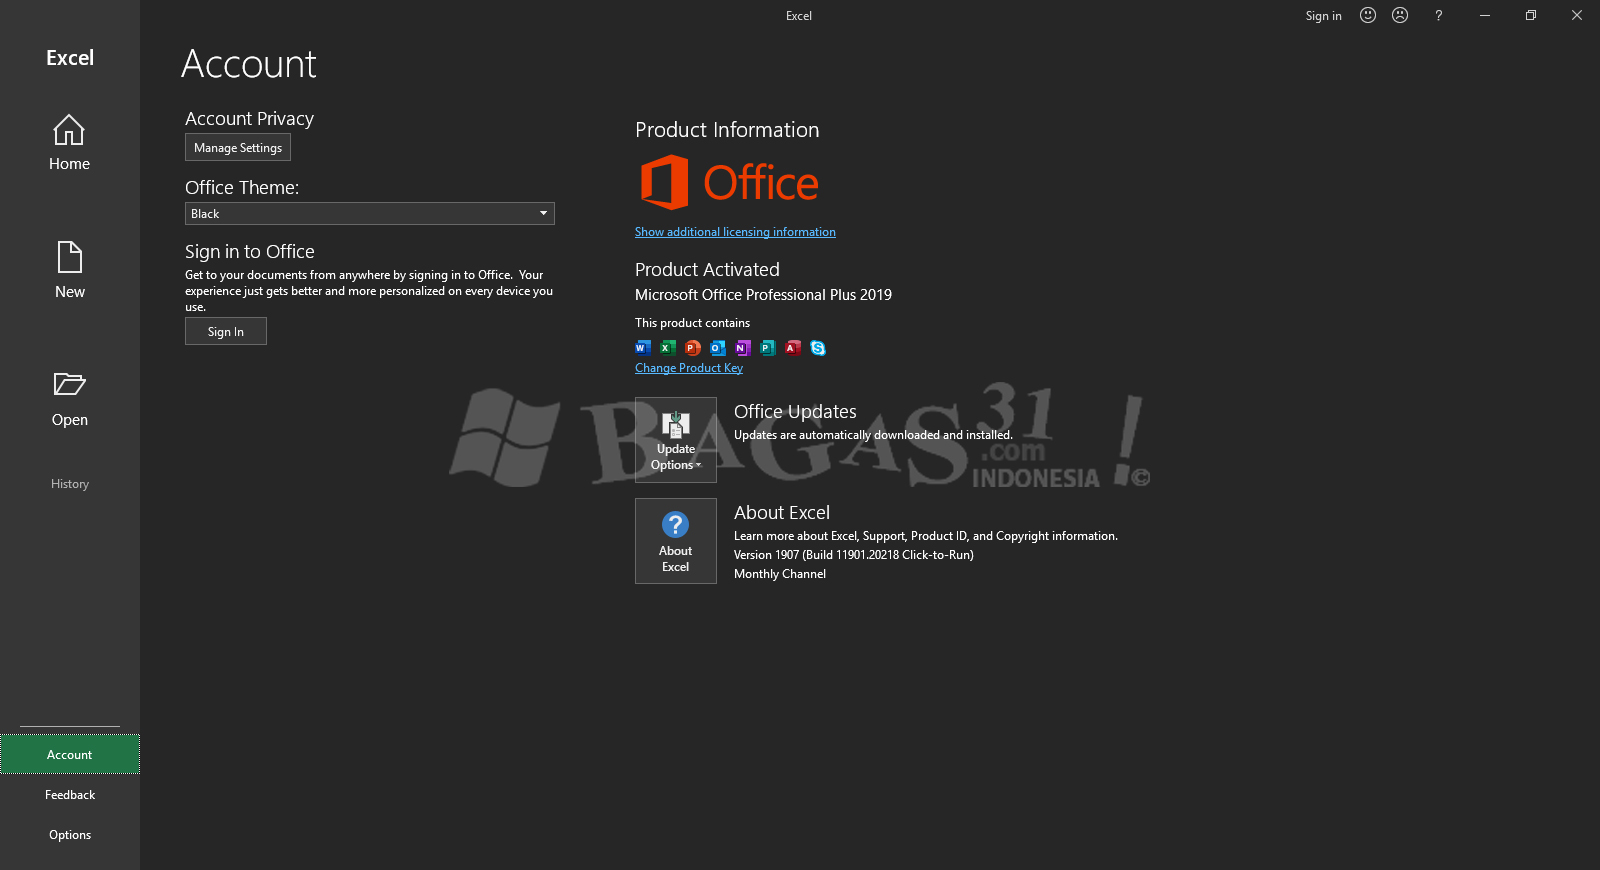 Microsoft Office Pro Plus 2019 Update Agustus 2019 Full Version